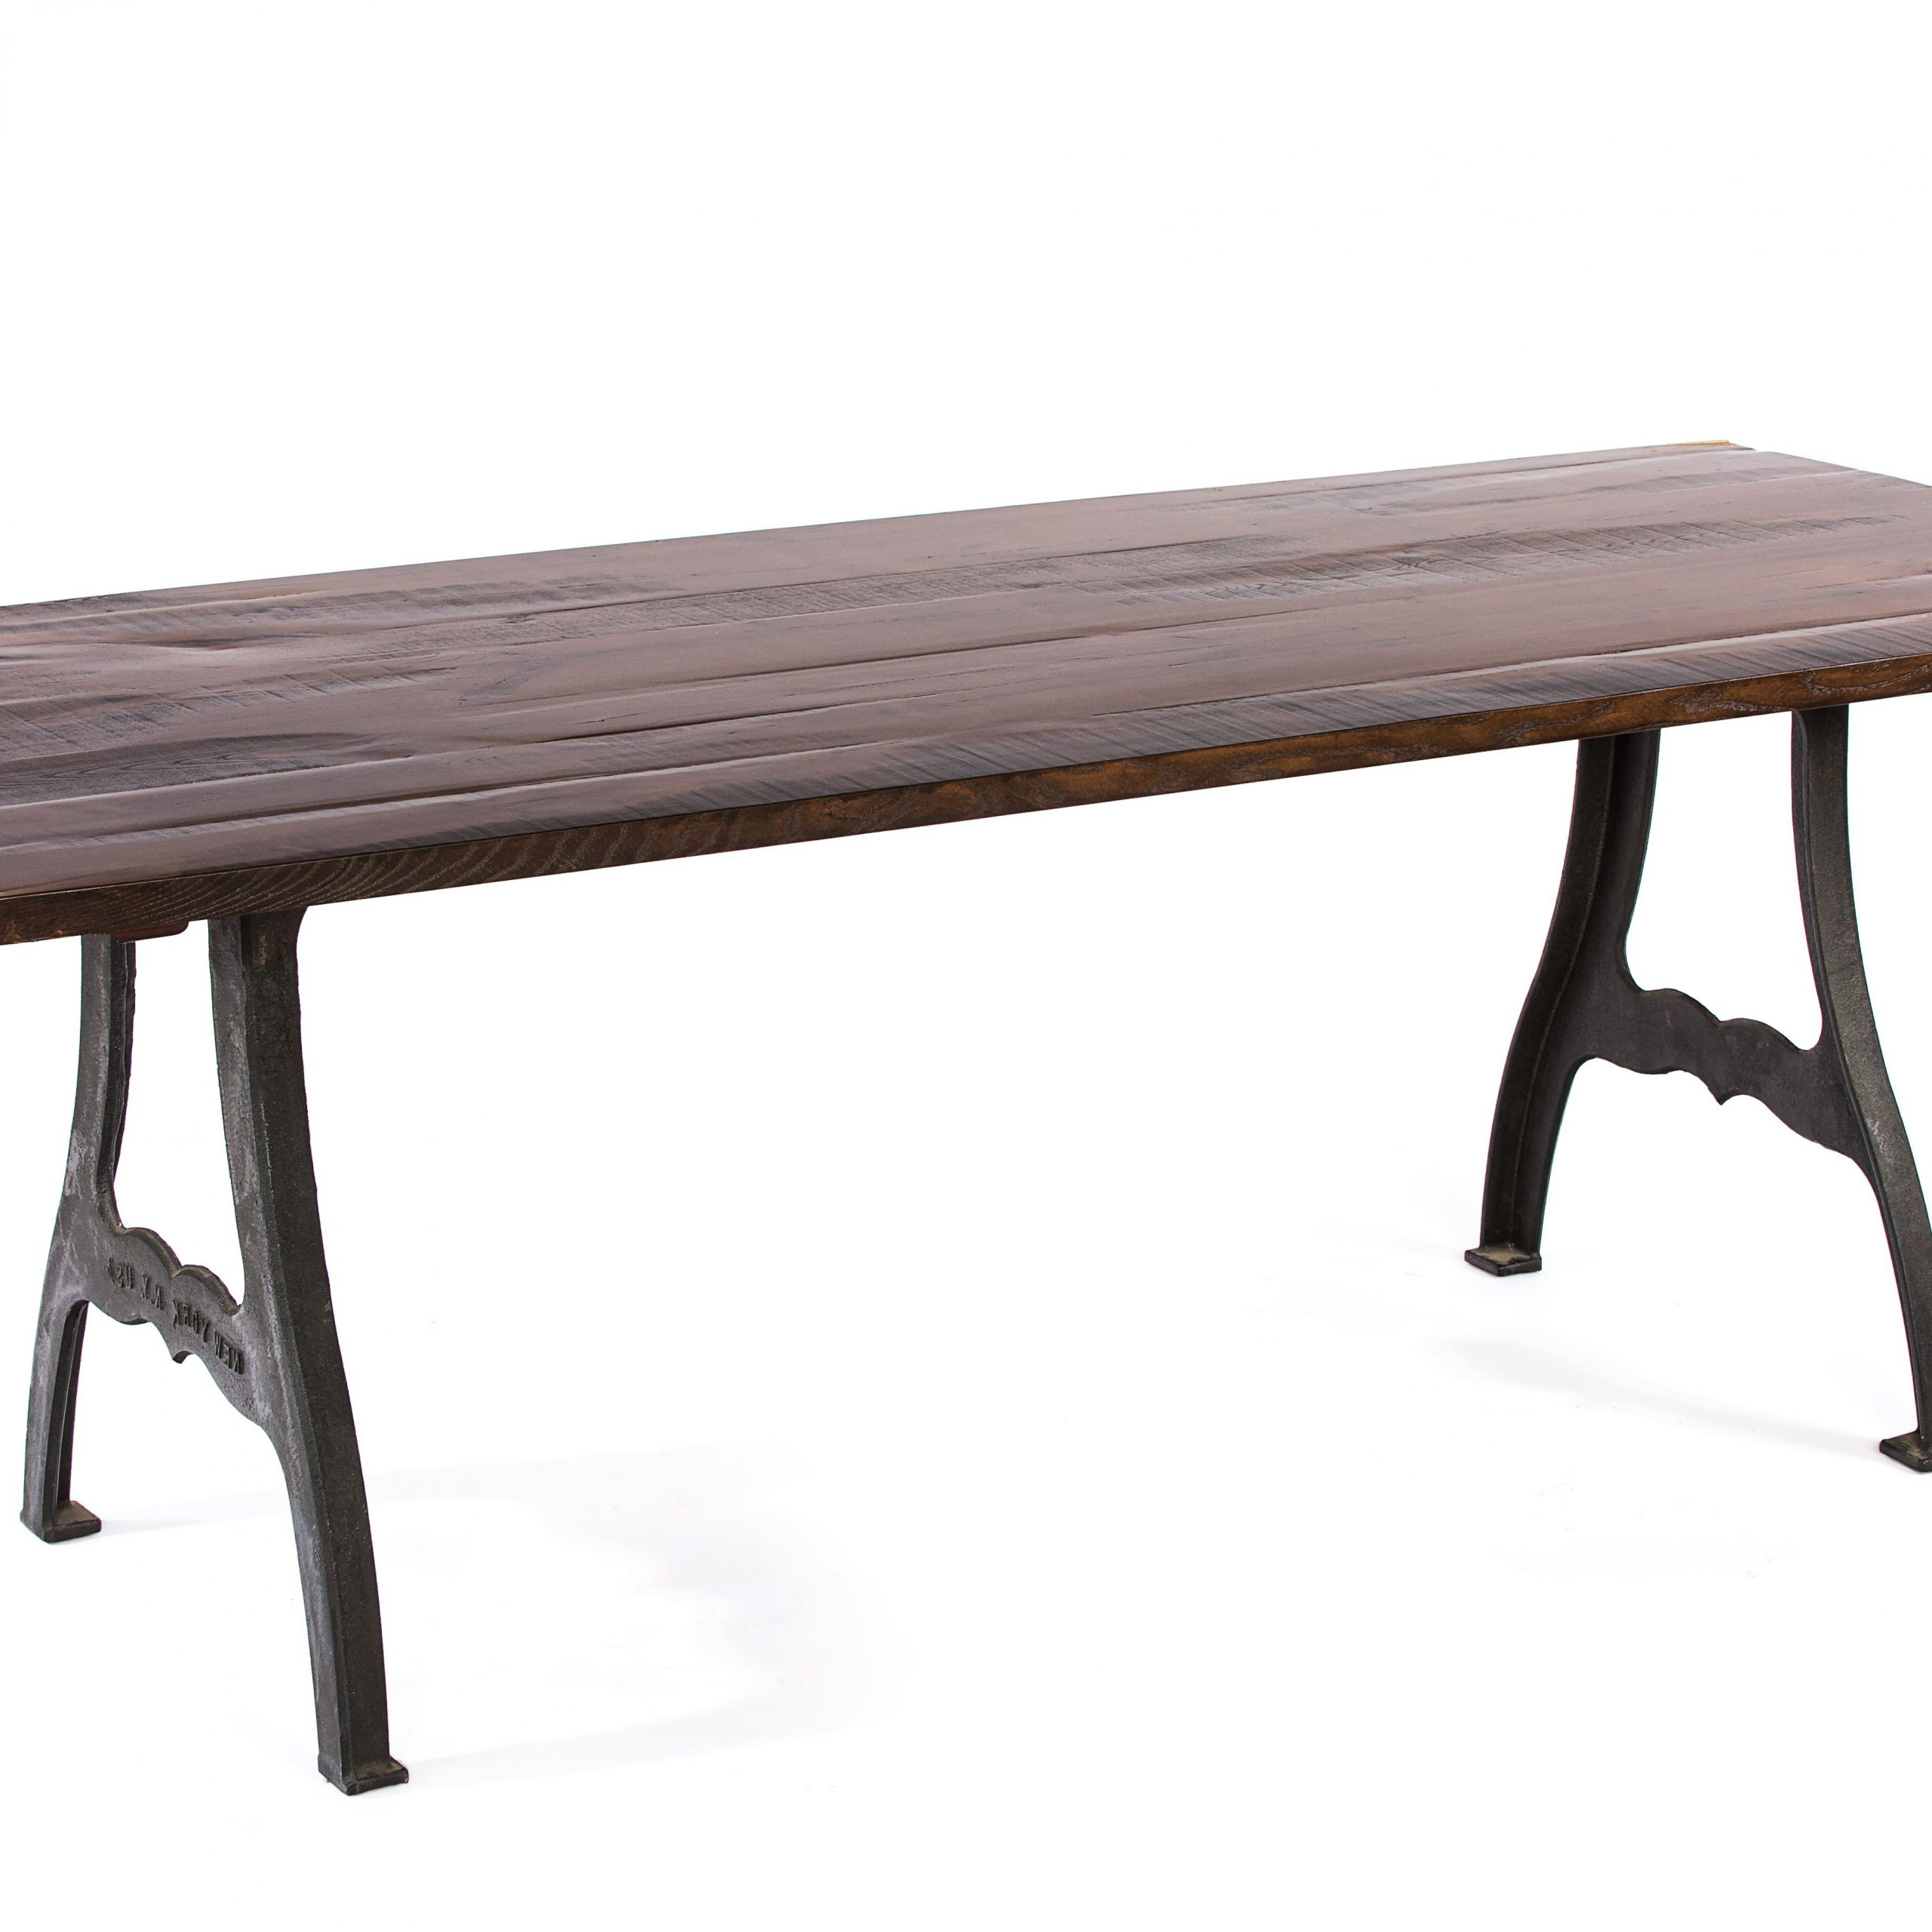 Buy A Hand Crafted The Williamsburg Reclaimed Wood Dining With Regard To Latest Dining Tables With Stained Ash Walnut (Gallery 9 of 30)